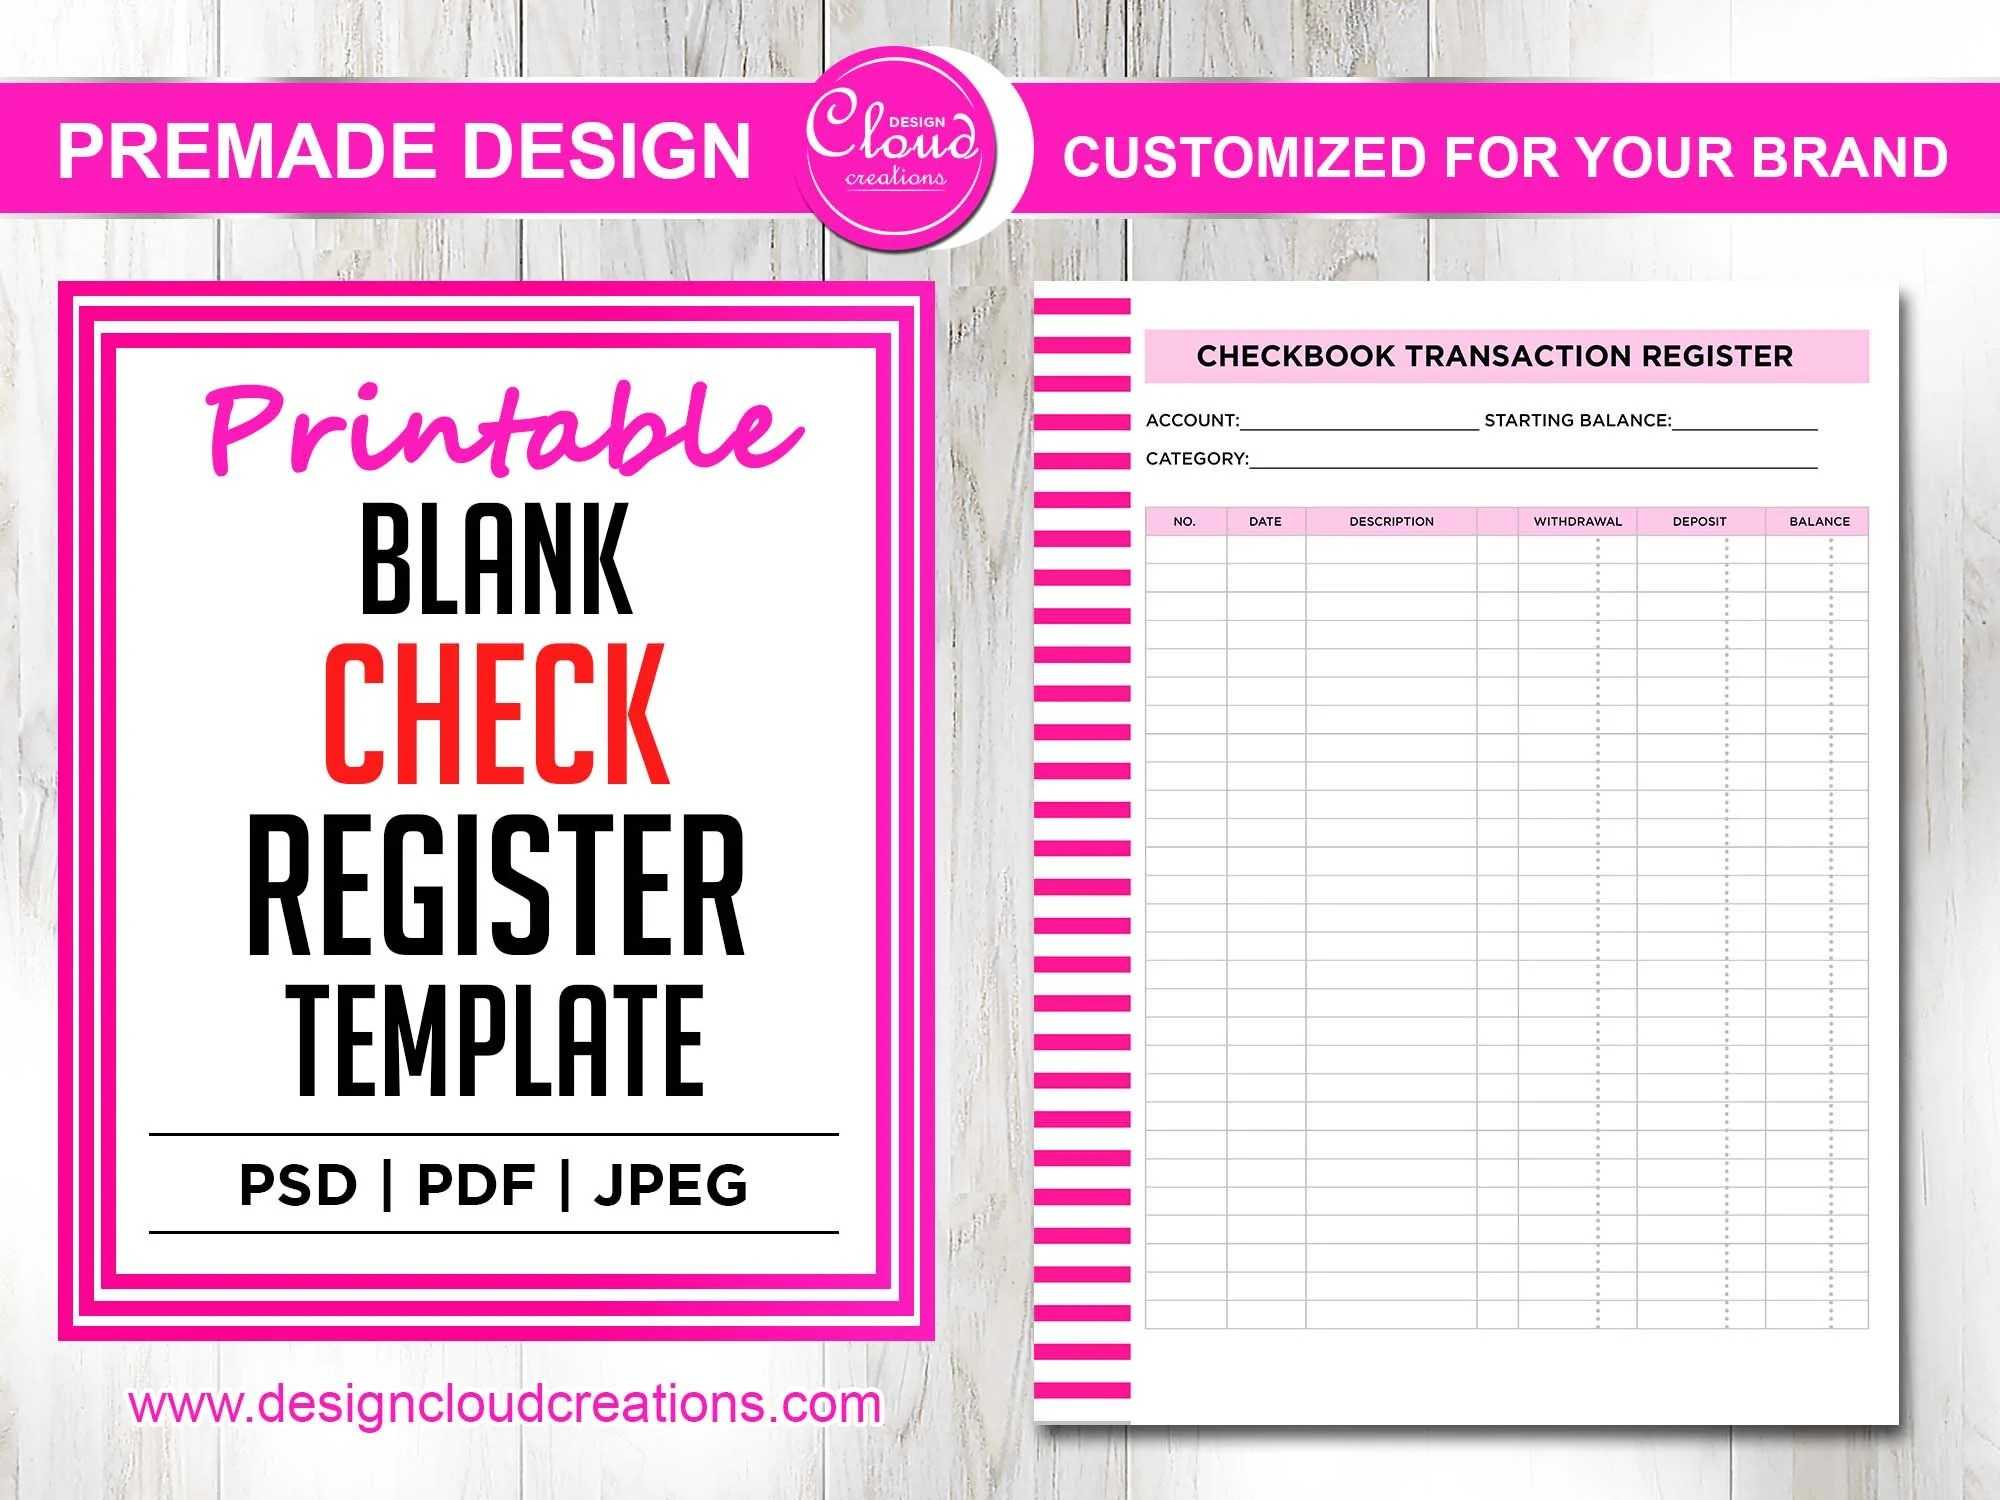 20/02/2021· check register (simple) track your current balance with this check register template. Printable Blank Check Register Template Printable Pdf File Etsy